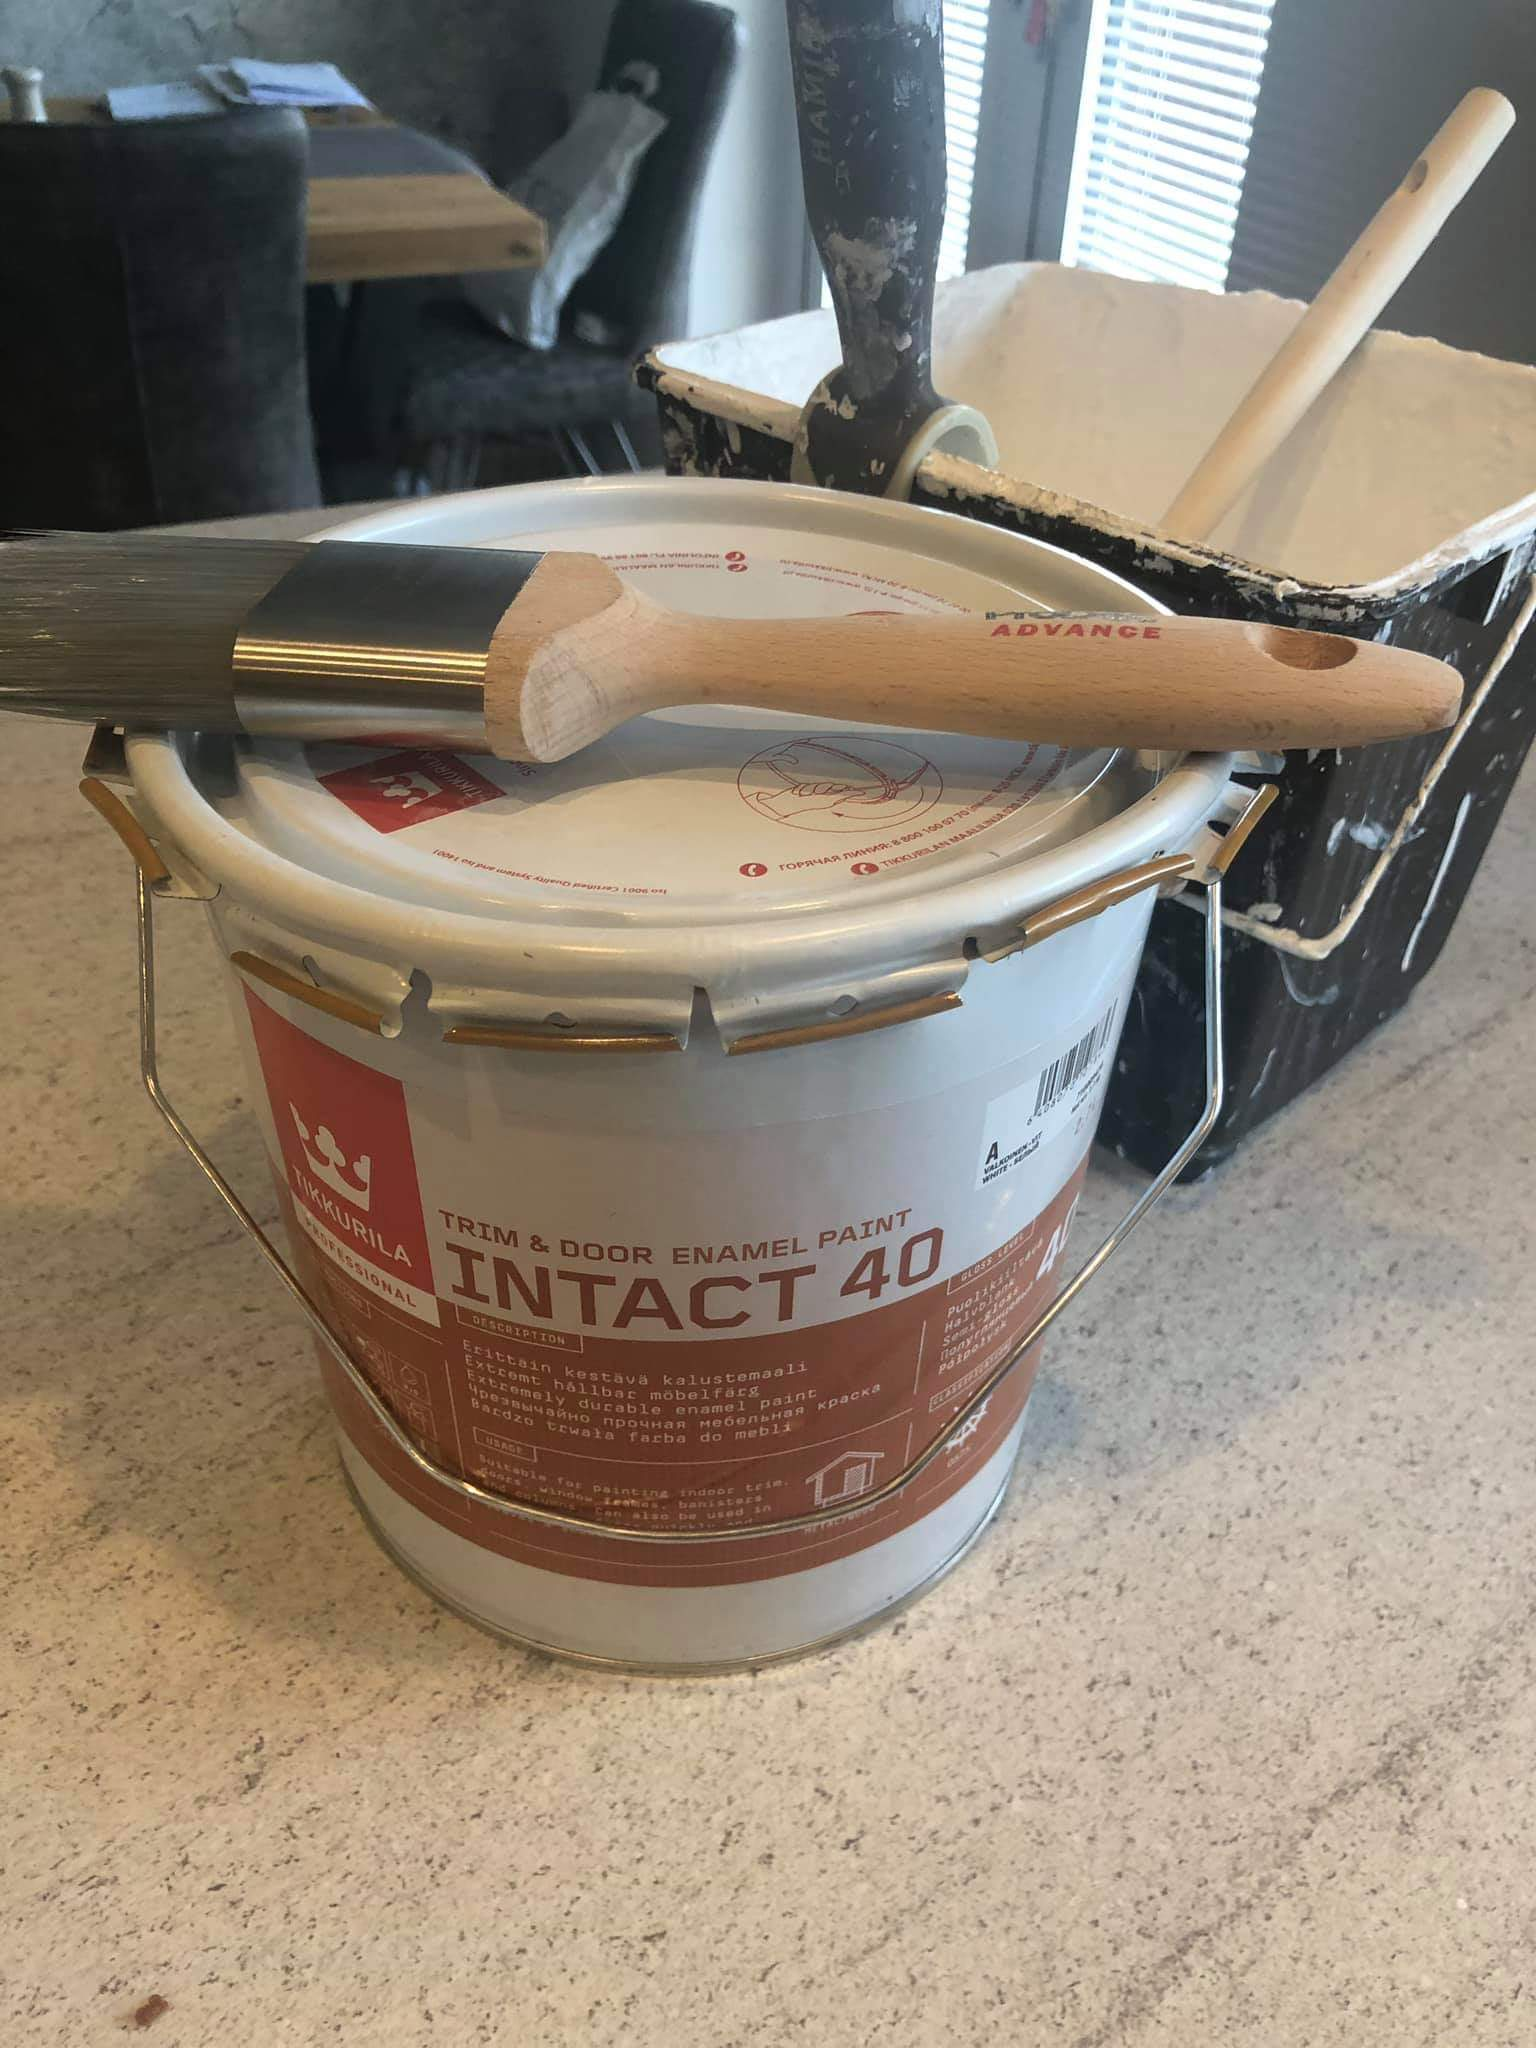 Tikkurila Intact Waterbased Trim Paint Review with Ice Fusion brush